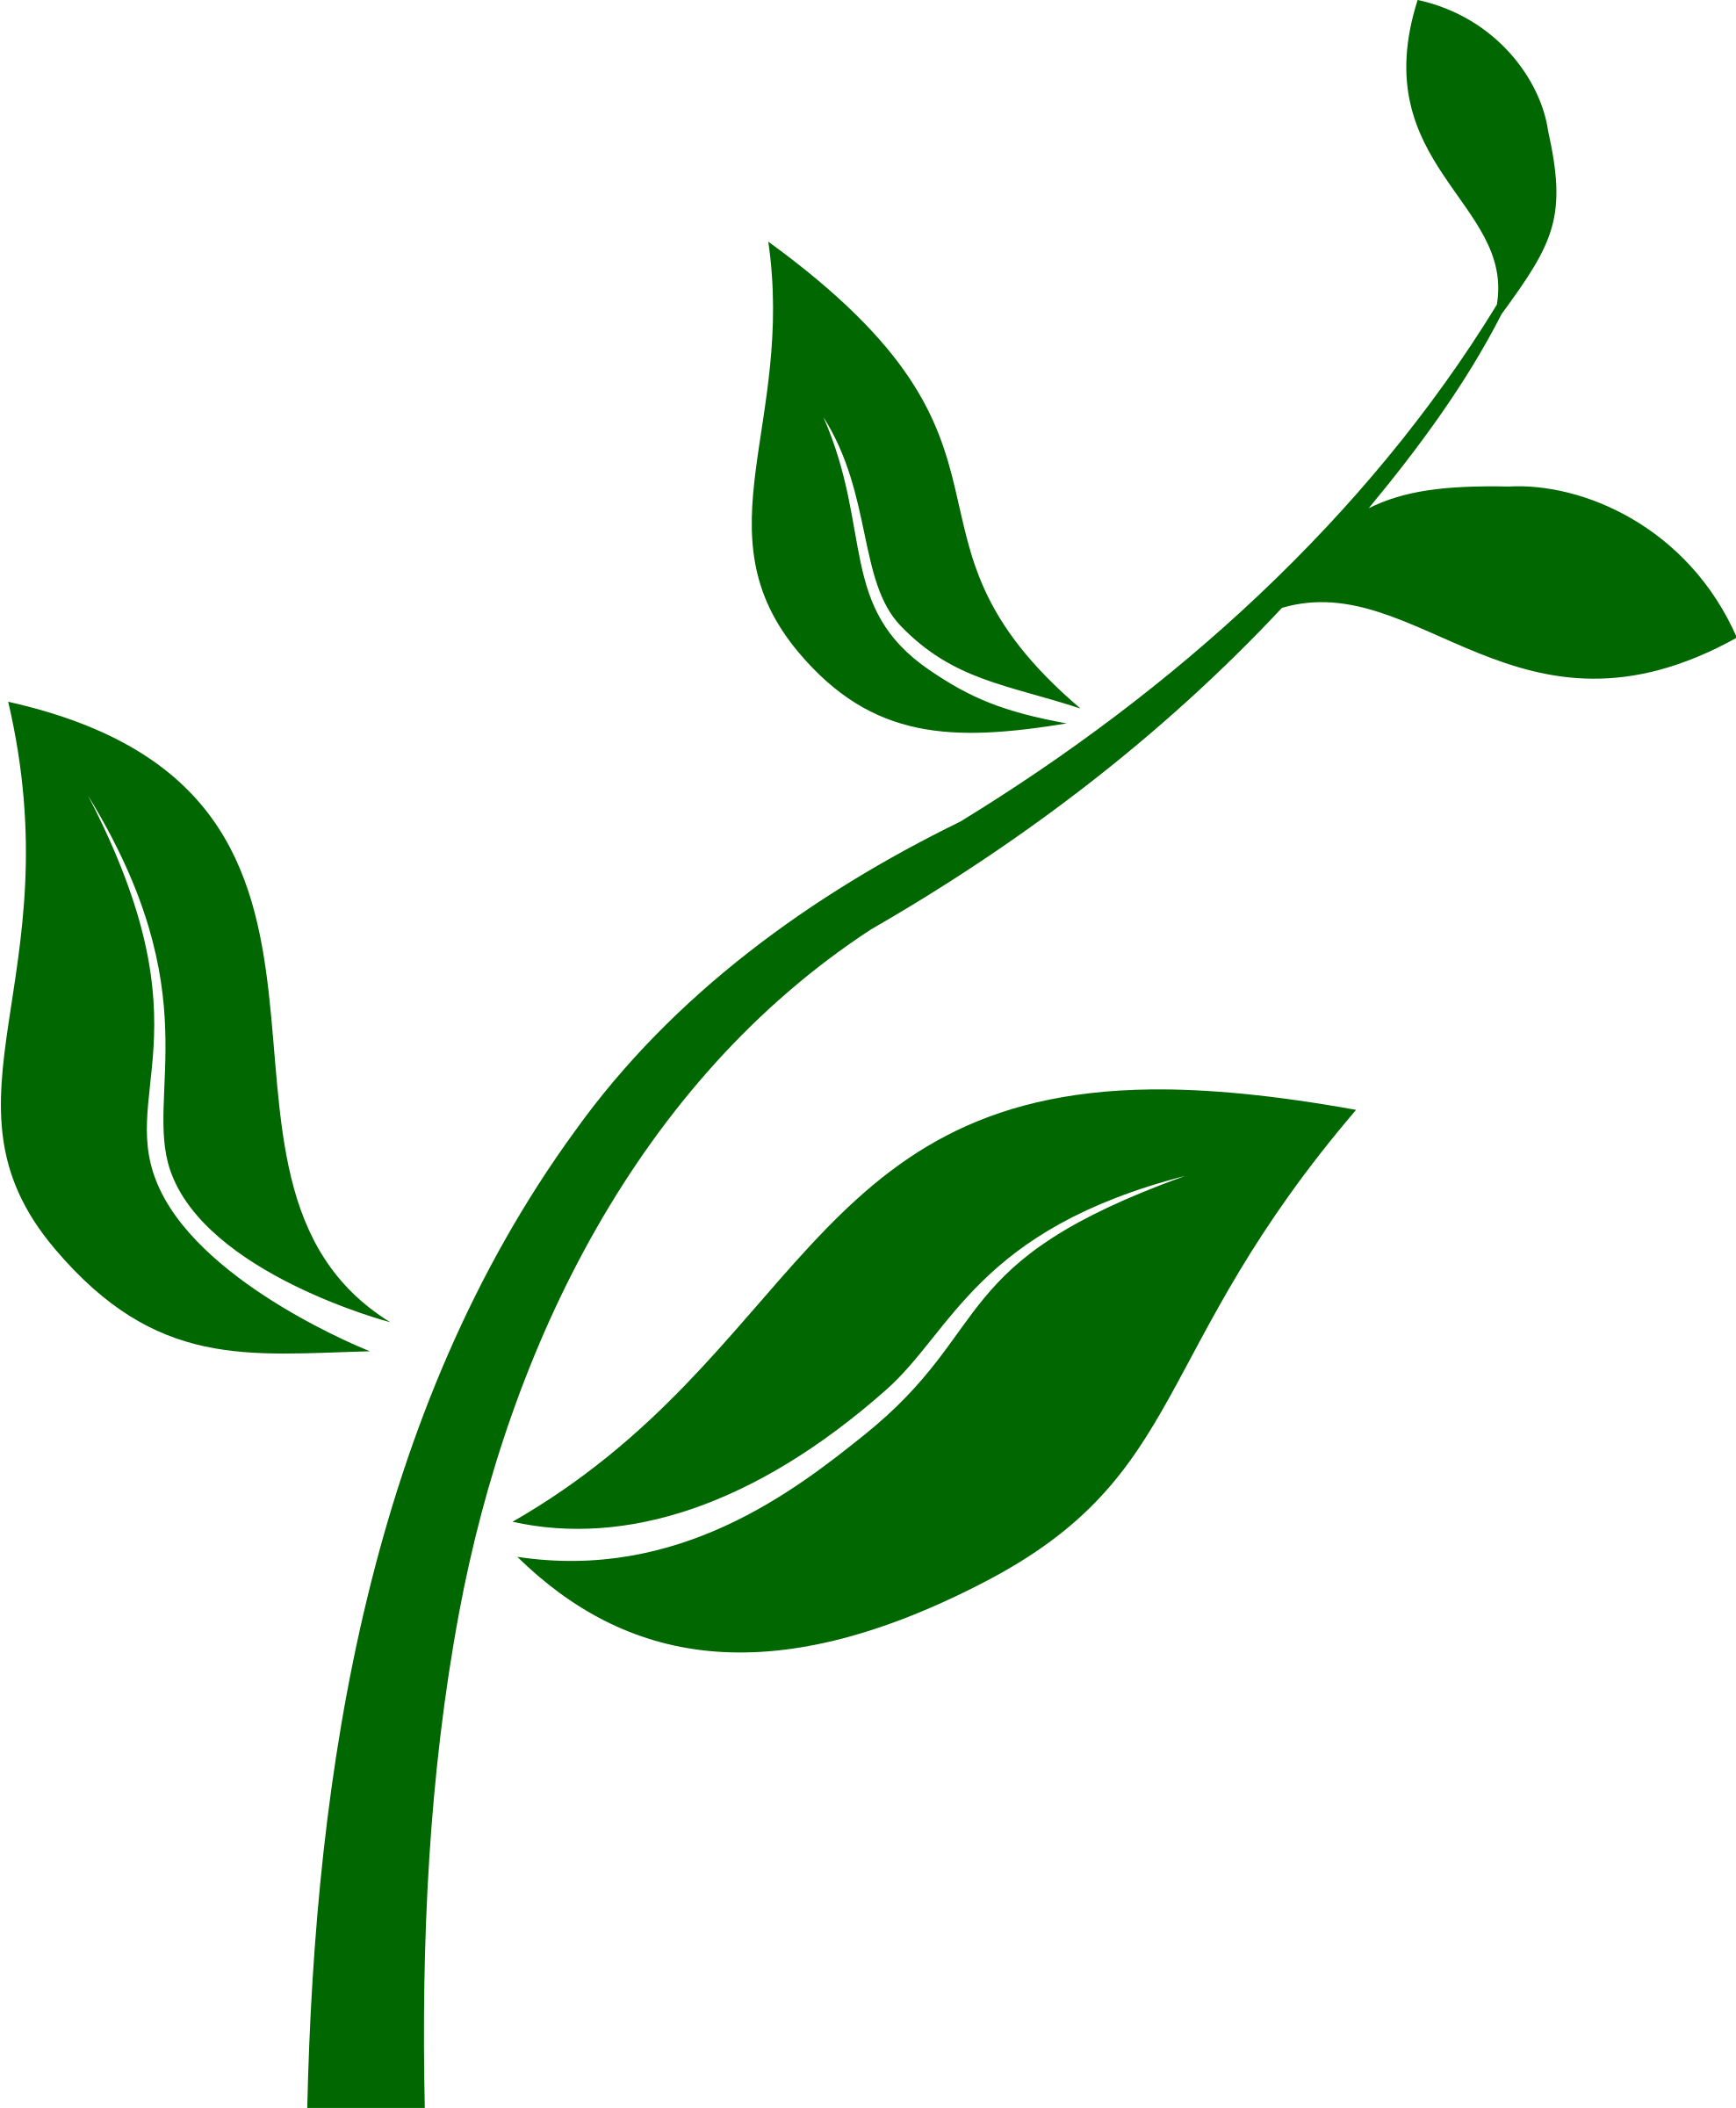 Flower png good virtual. Clipart flowers animated